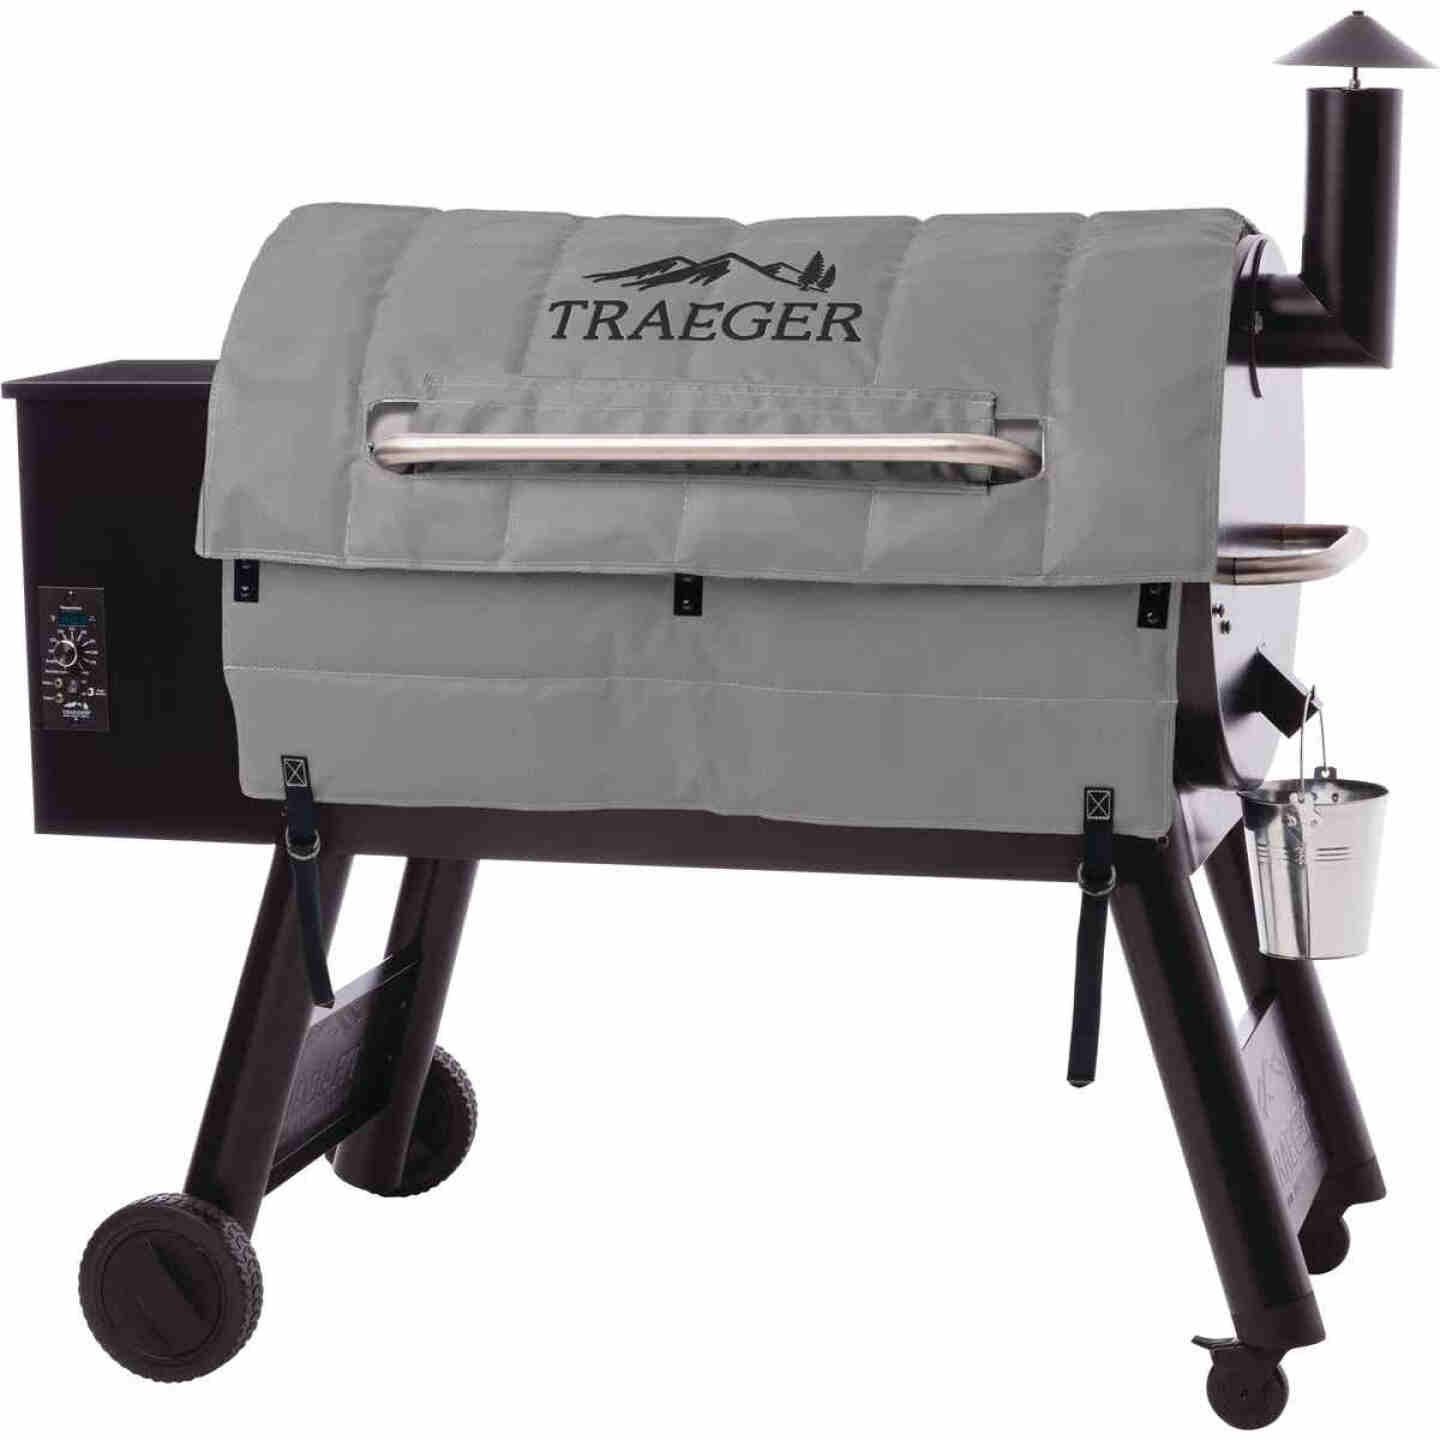 Traeger Pro 34 44 In. Gray Foil-Backed Heat-Resistant Fabric Insulated Blanket Grill Cover Image 1